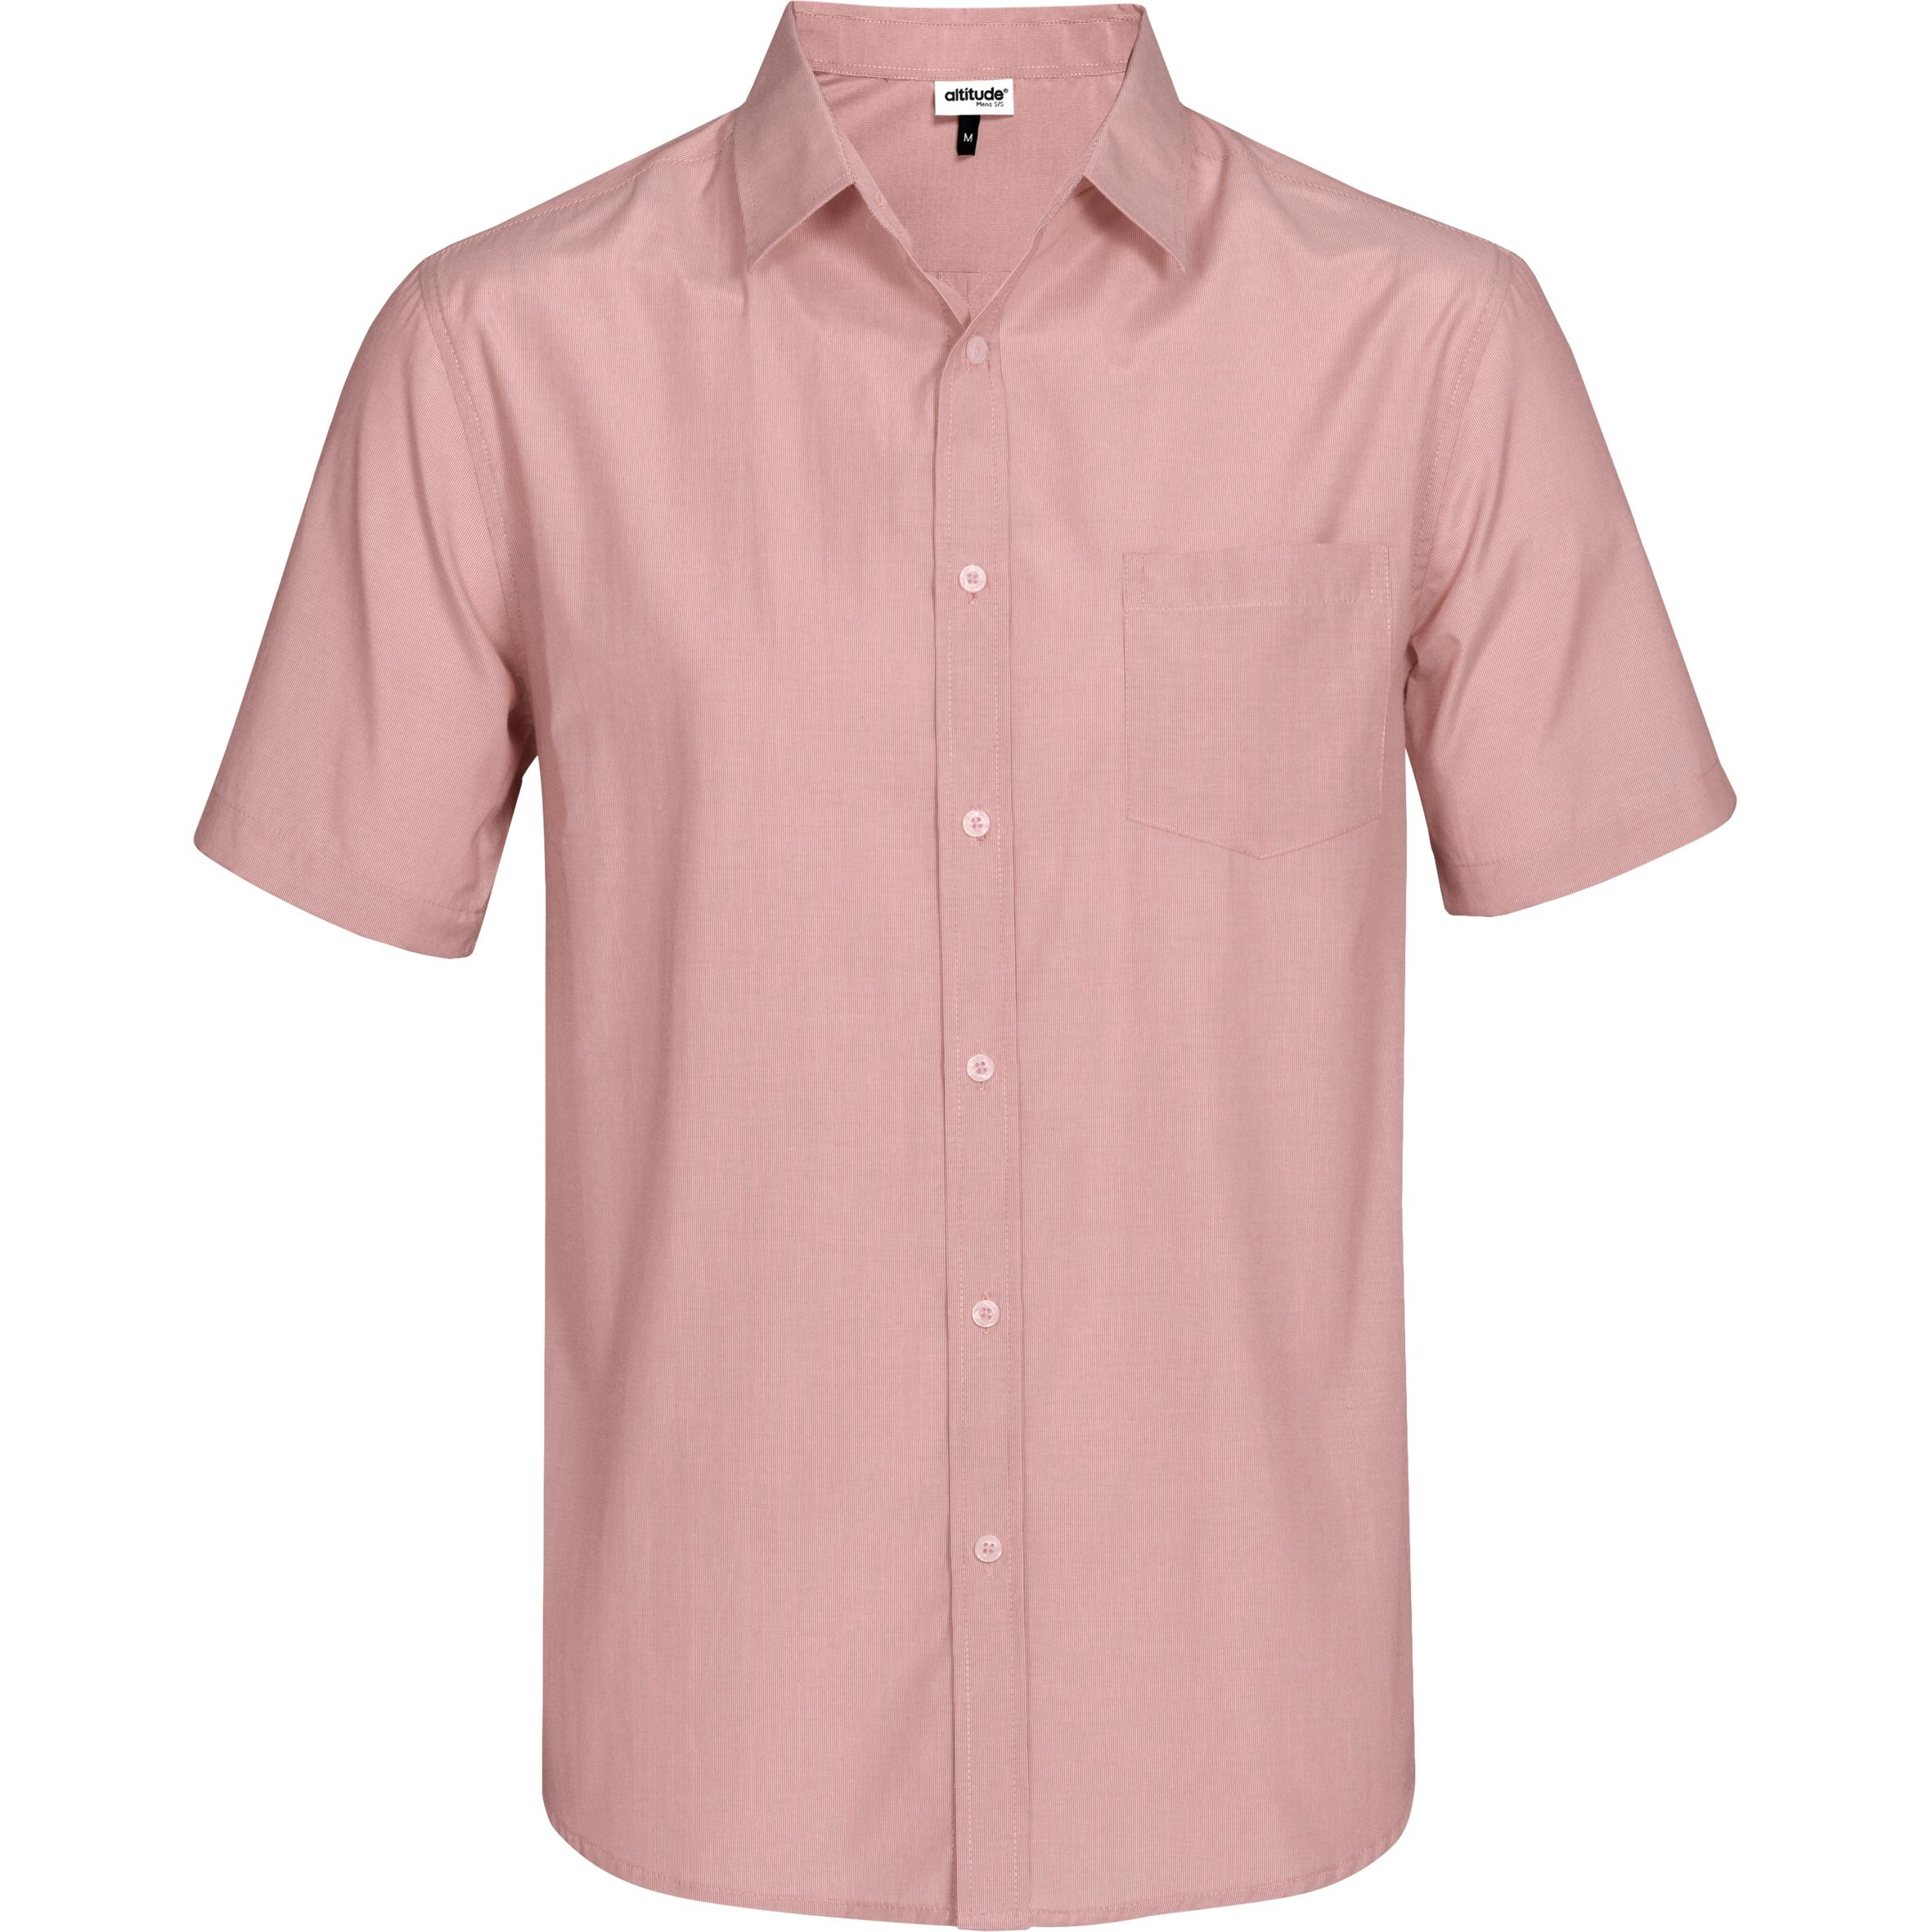 Mens Short Sleeve Portsmouth Shirt - Red Only